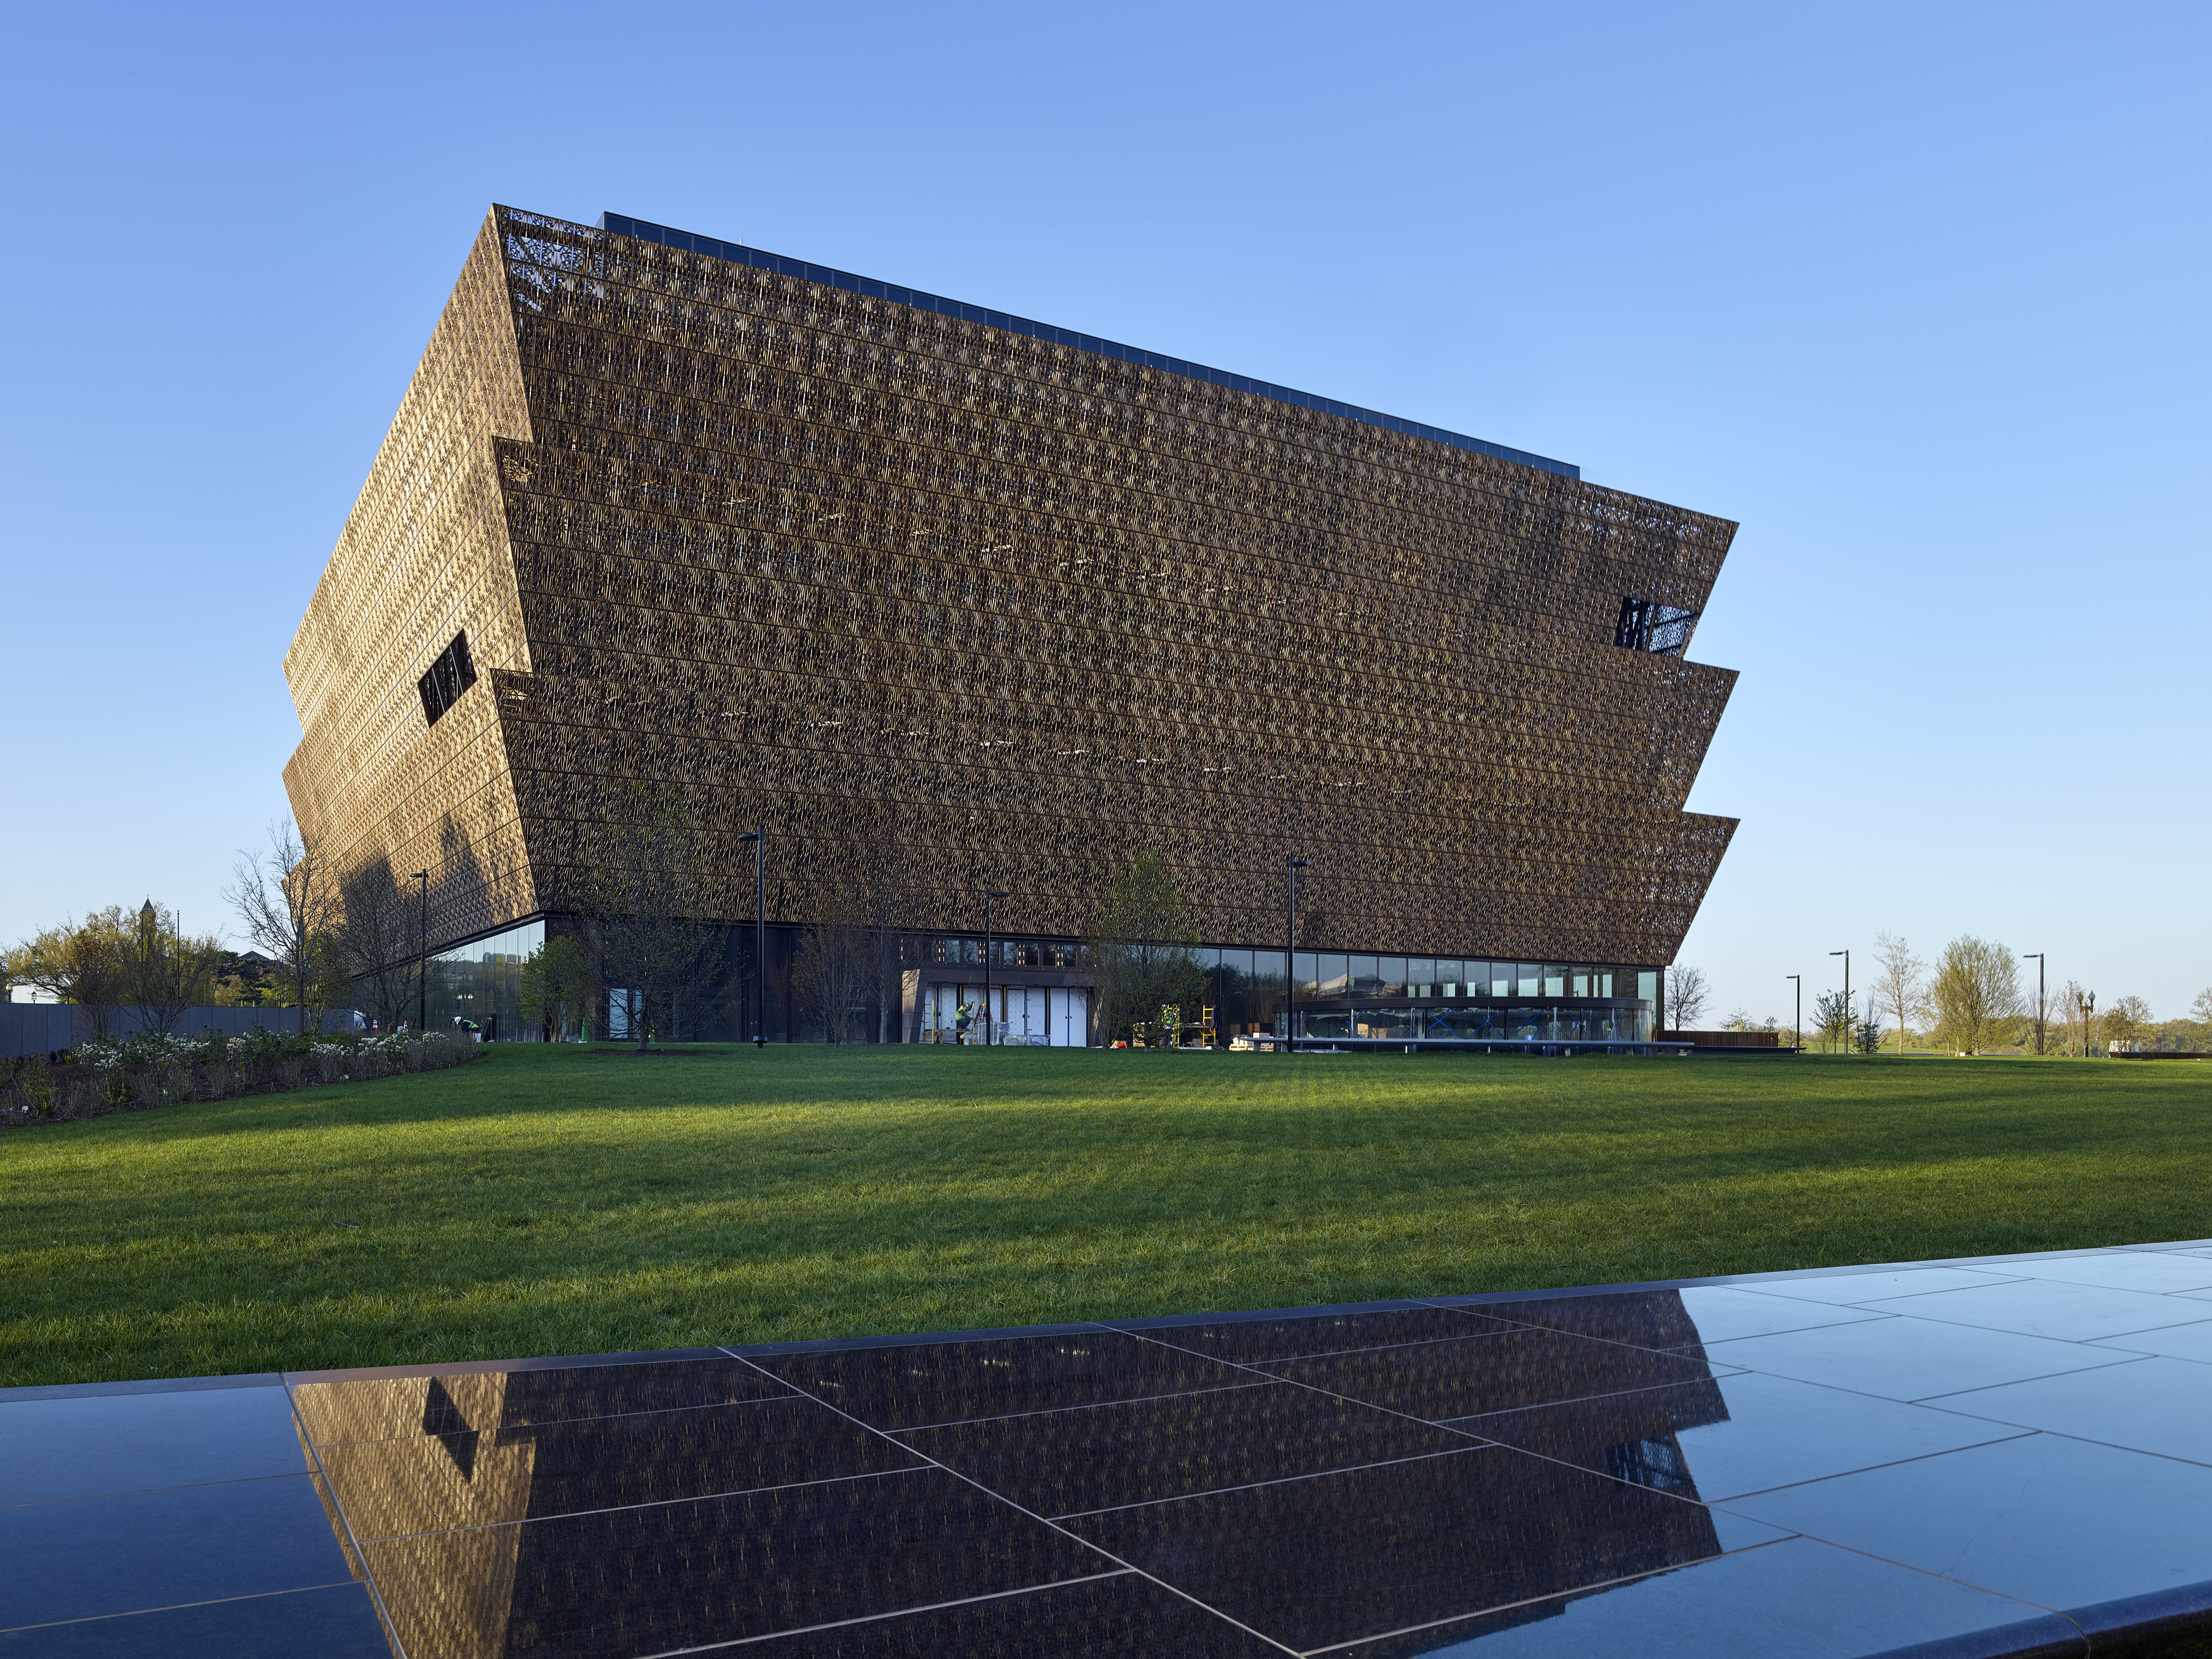 National Museum Of African American History And Culture Reaches Milestone: 1 Million Visitors